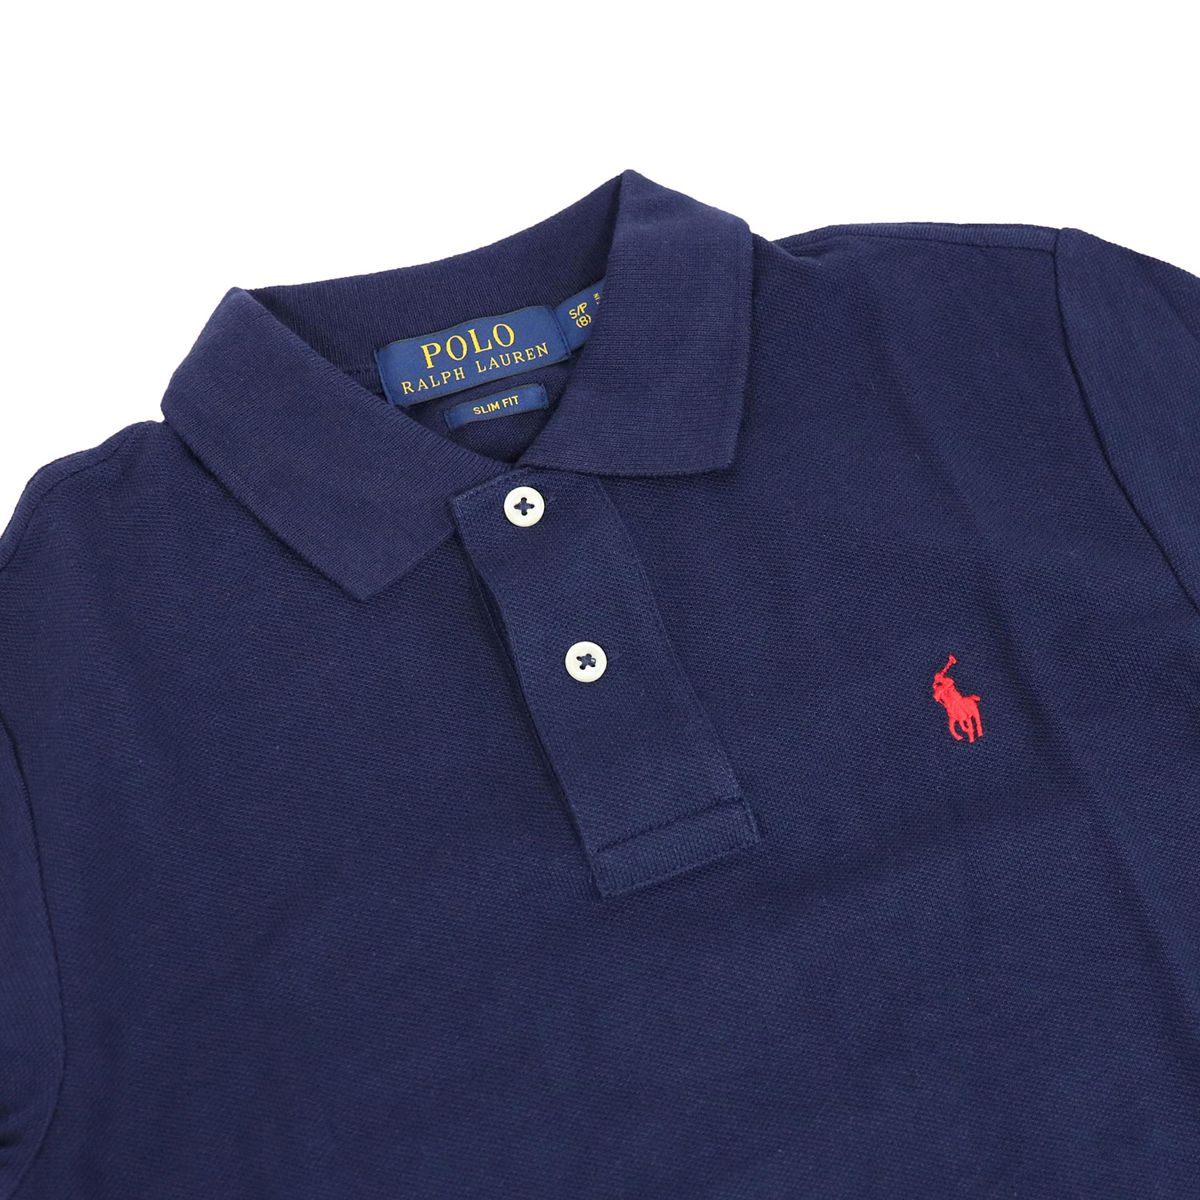 Two-button cotton polo shirt with contrast logo embroidery Blue Polo Ralph Lauren